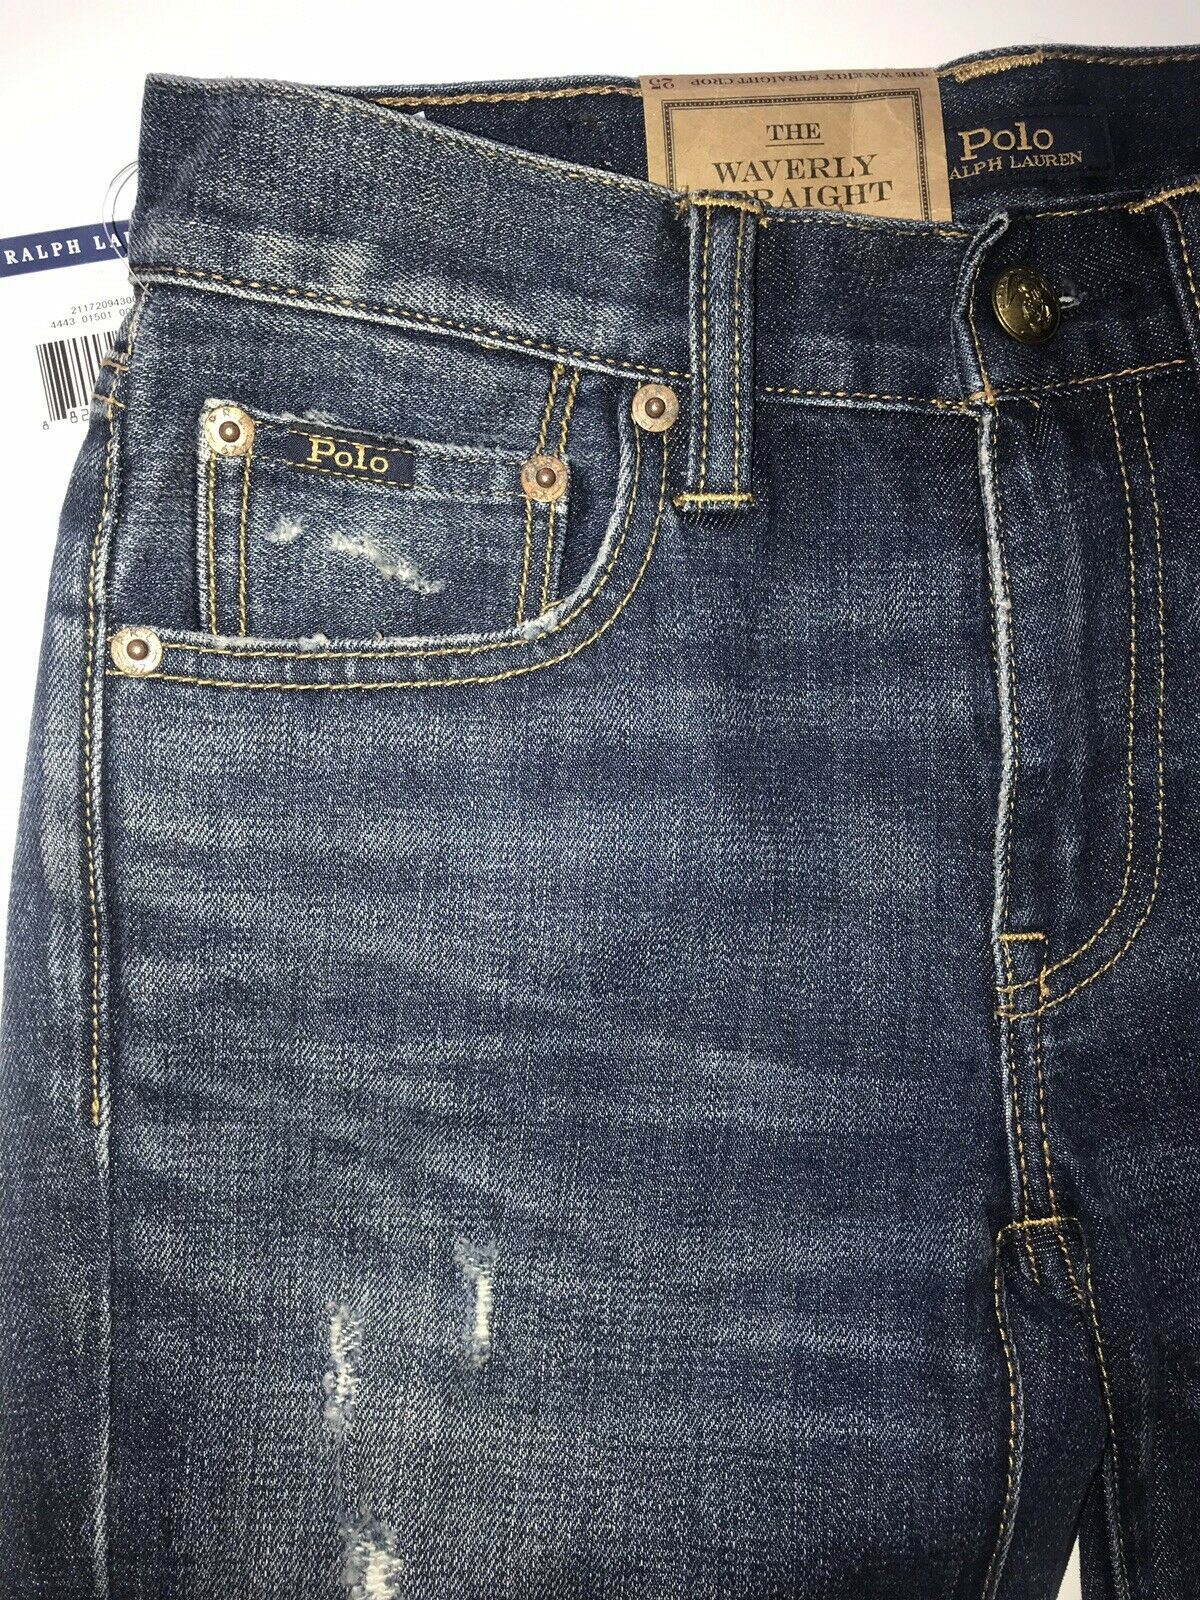 NWT $298 Polo Ralph Lauren Waverly Straight Crop Embroidered Blue Jeans Size 26